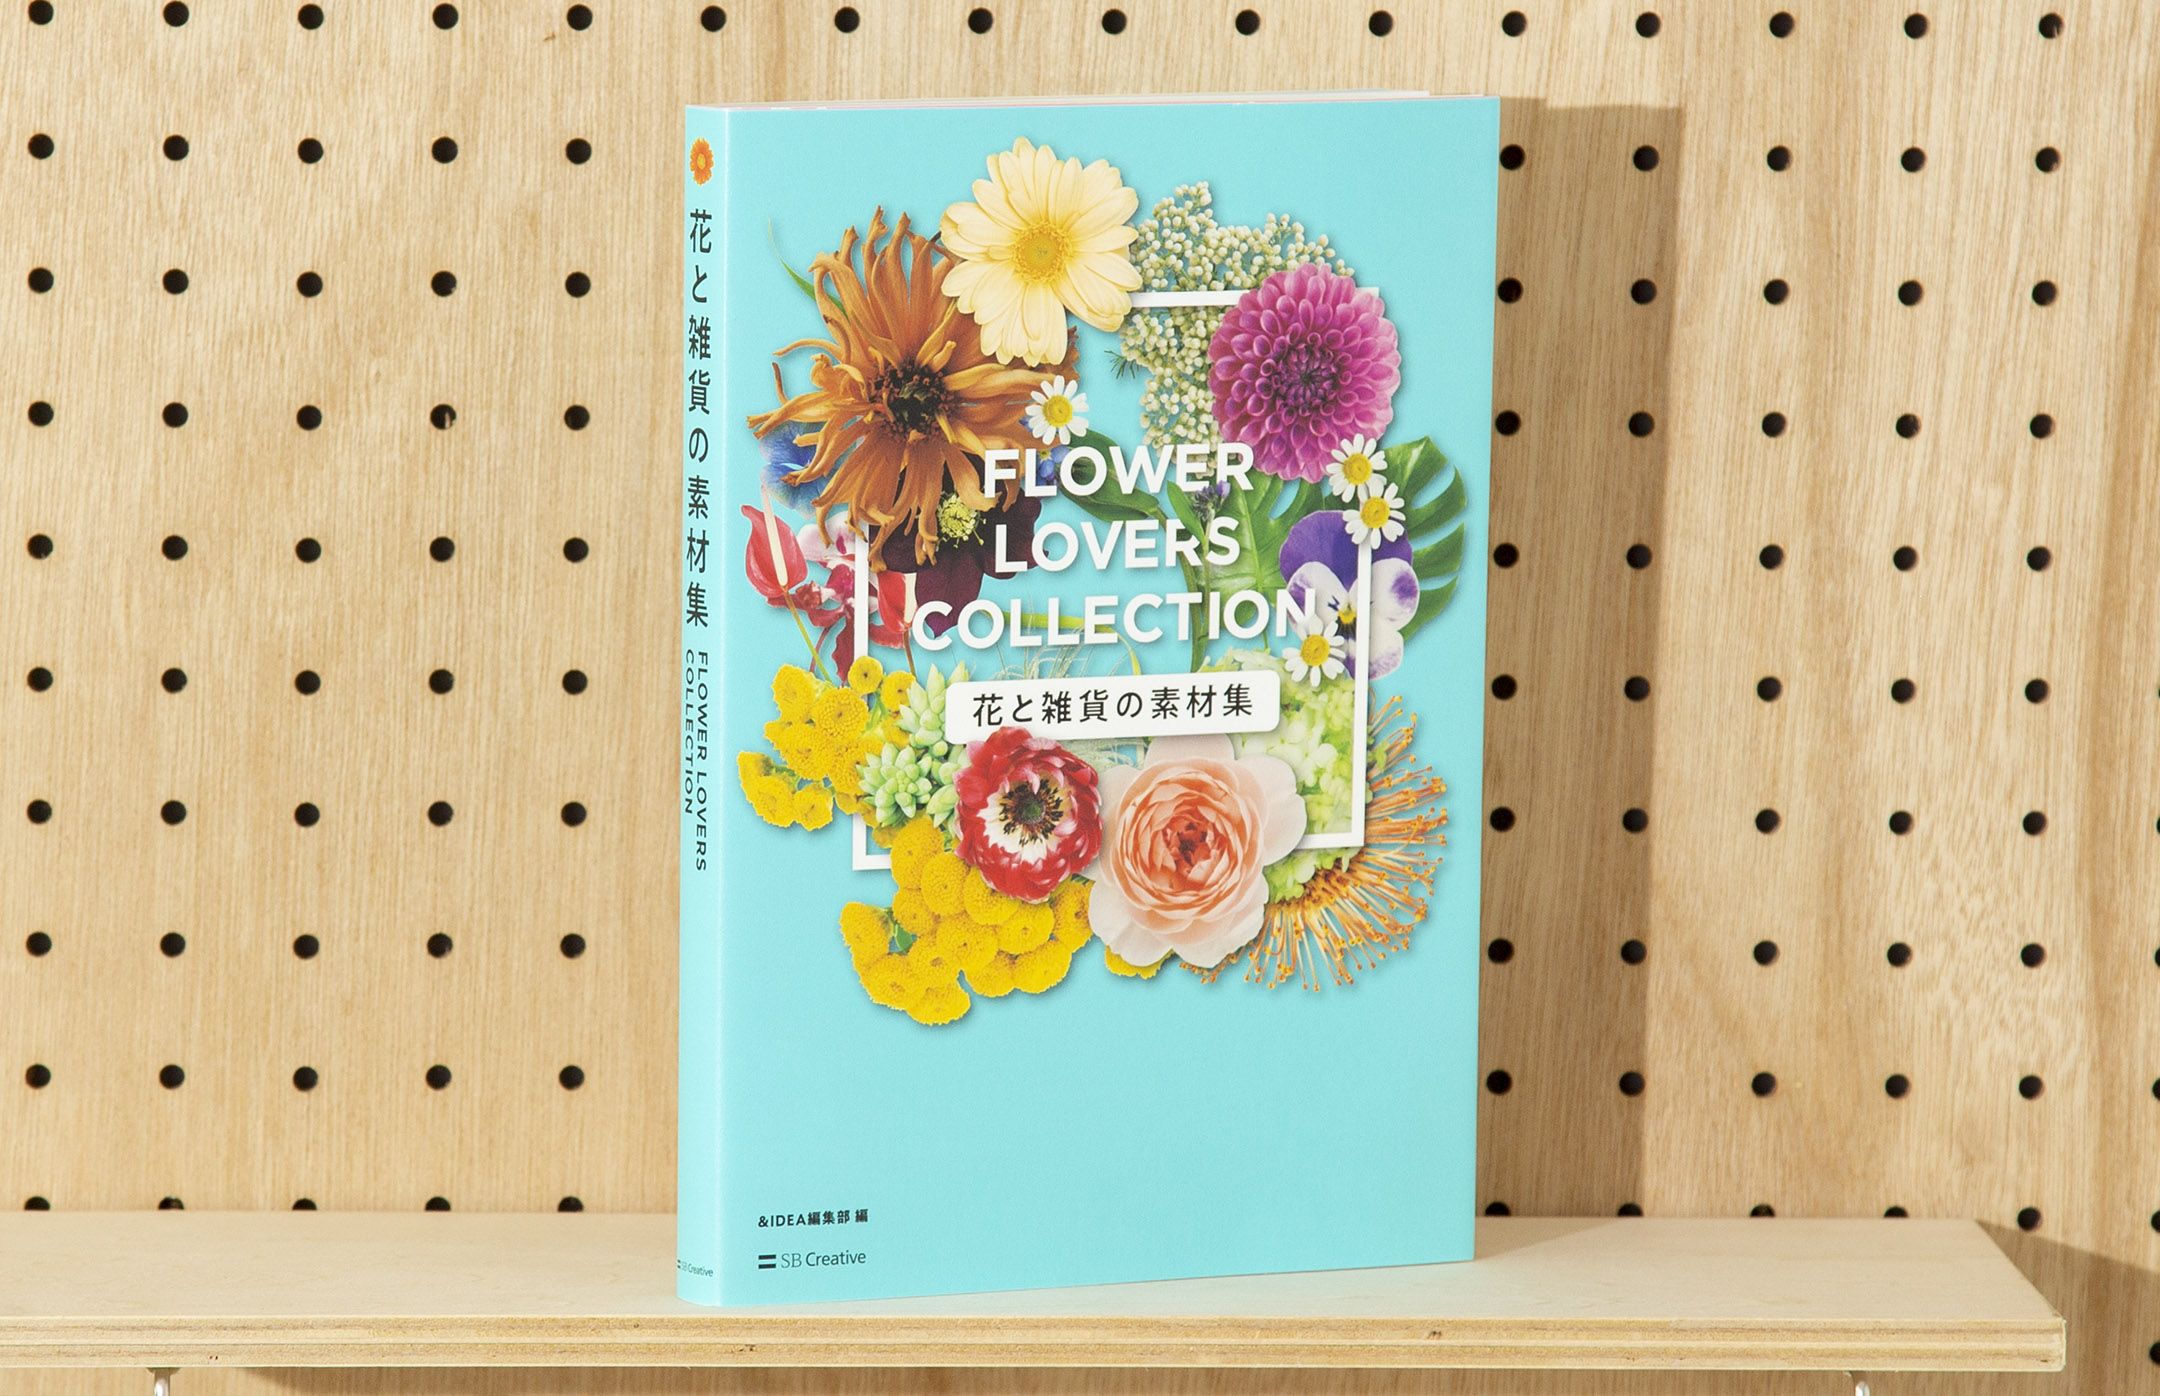 FLOWER LOVERS COLLECTION 花と雑貨の素材集